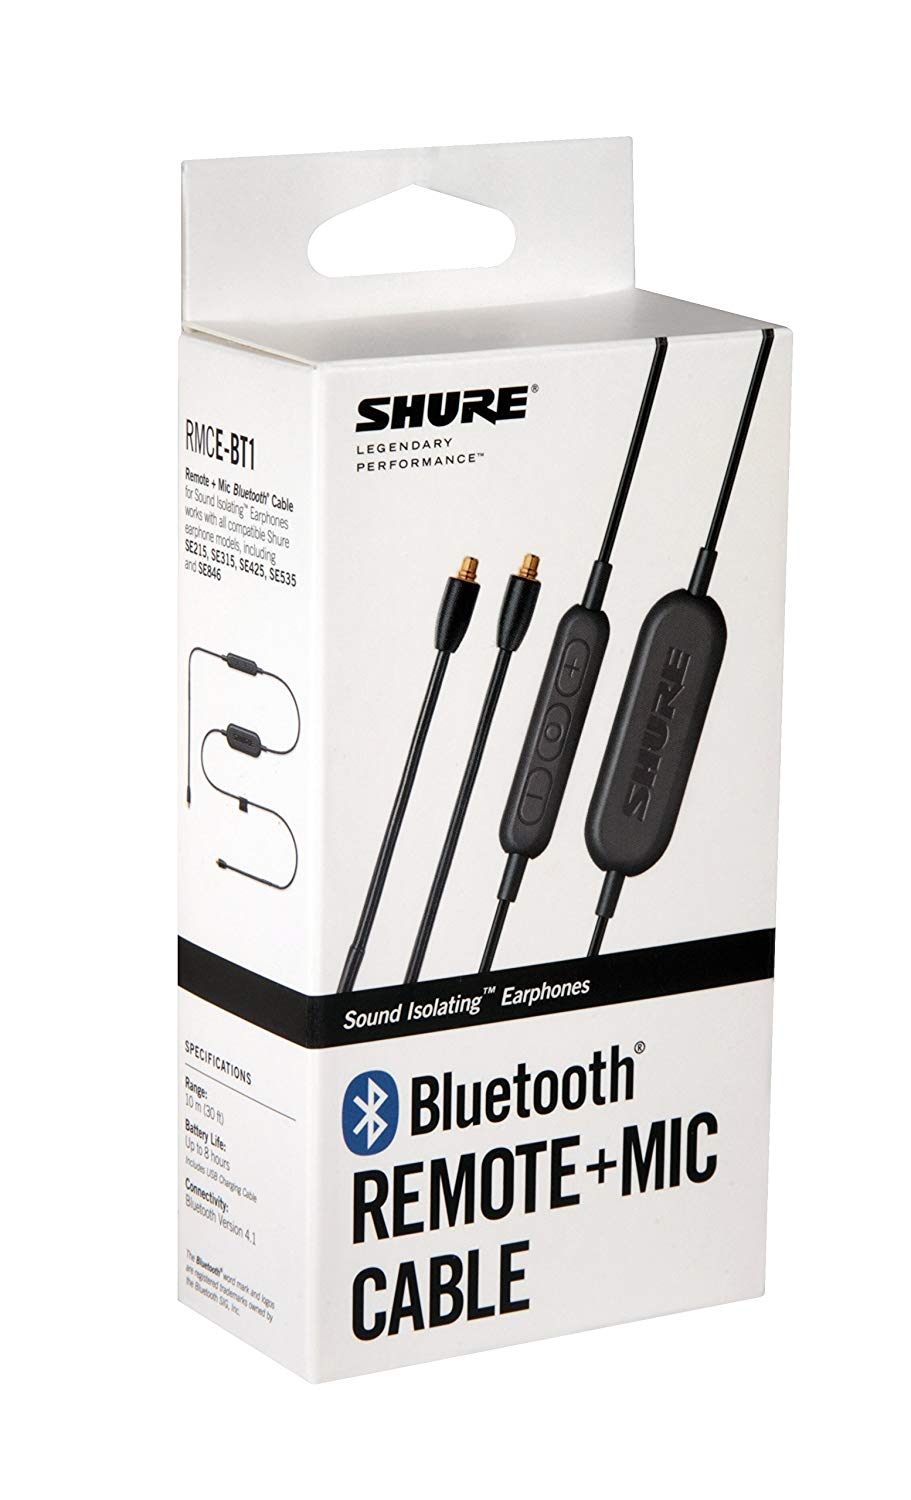 Shure RMCE-BT1 Bluetooth Enabled Accessory Cable with Remote + M